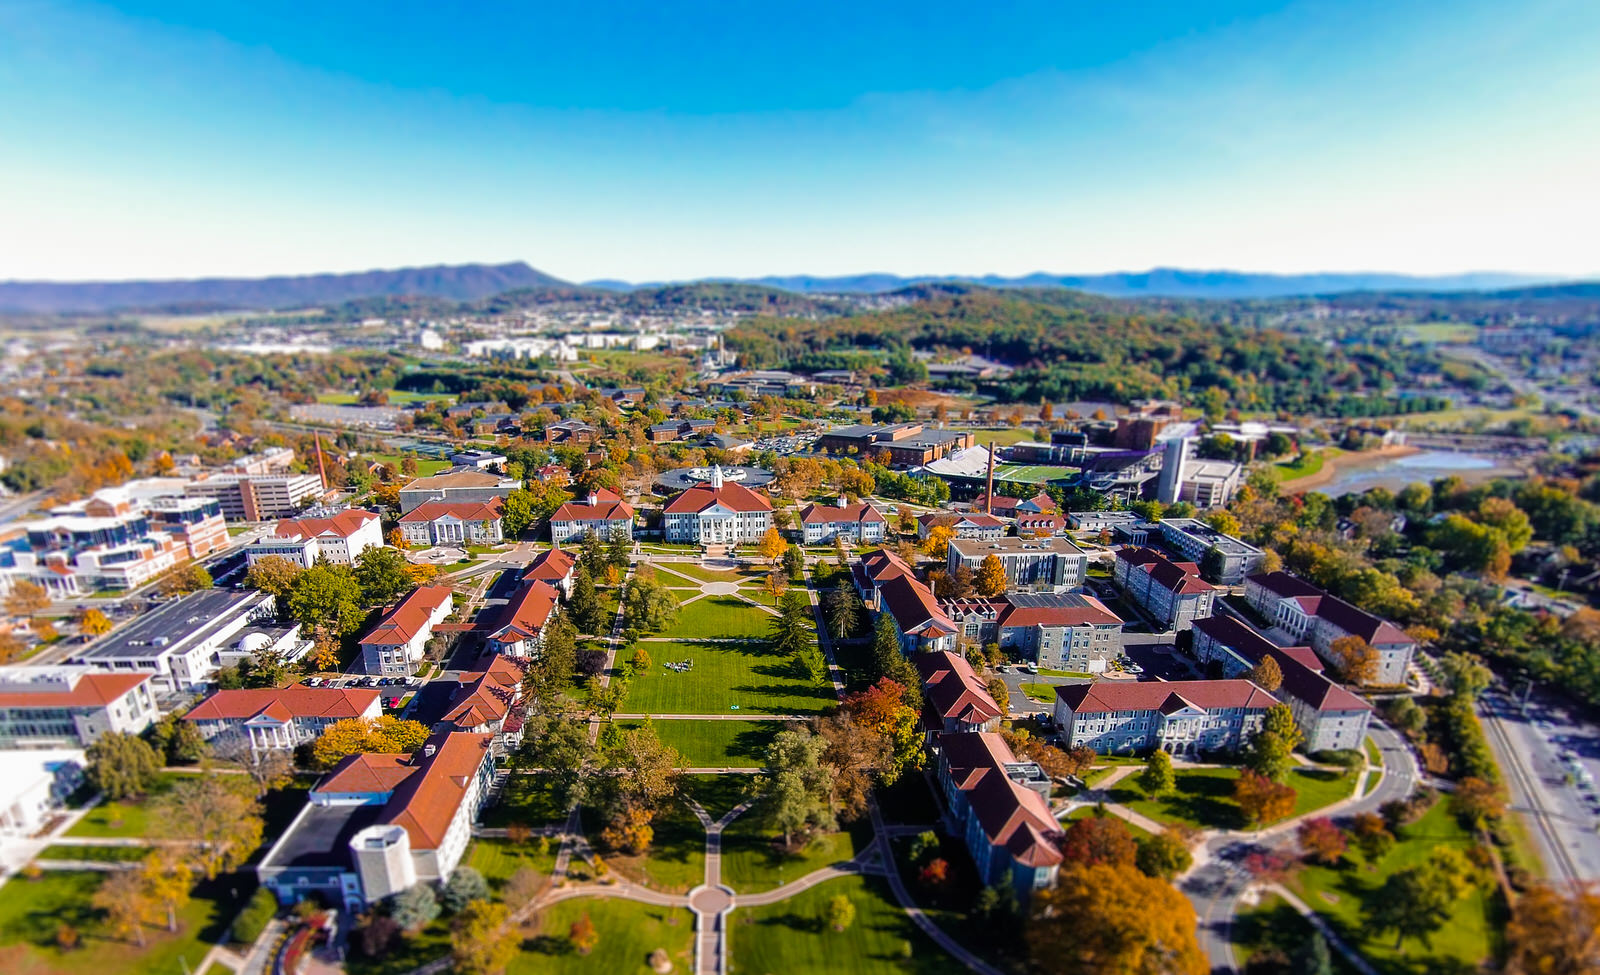 James Madison University: Aerial View